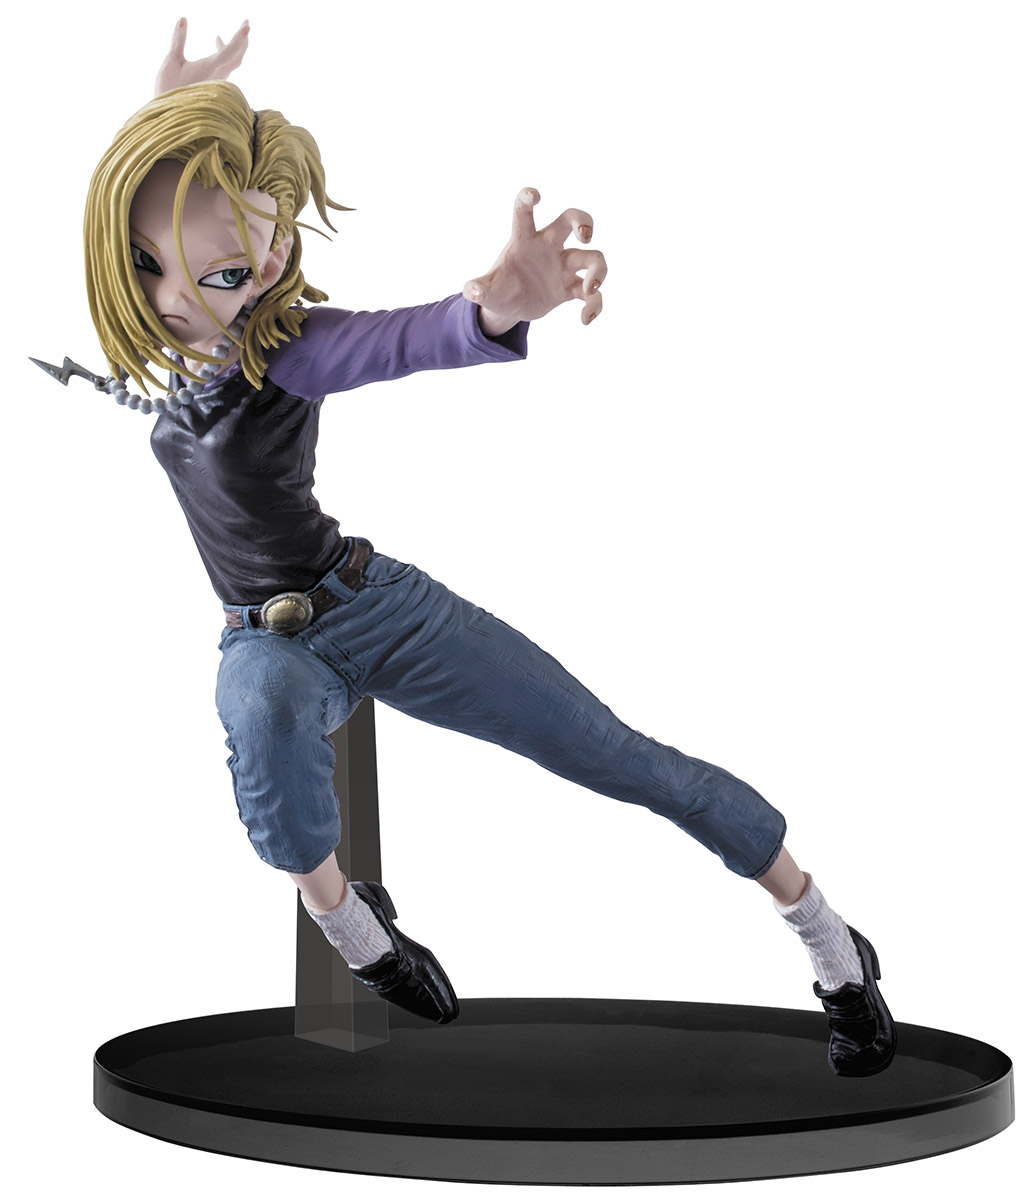 Bandai Фигурка Dragon Ball Z Colosseum SCultures Big Budoukai 6 Vol.3 Android 18 bandai фигурка dragon ball z super master stars diorama the son goku